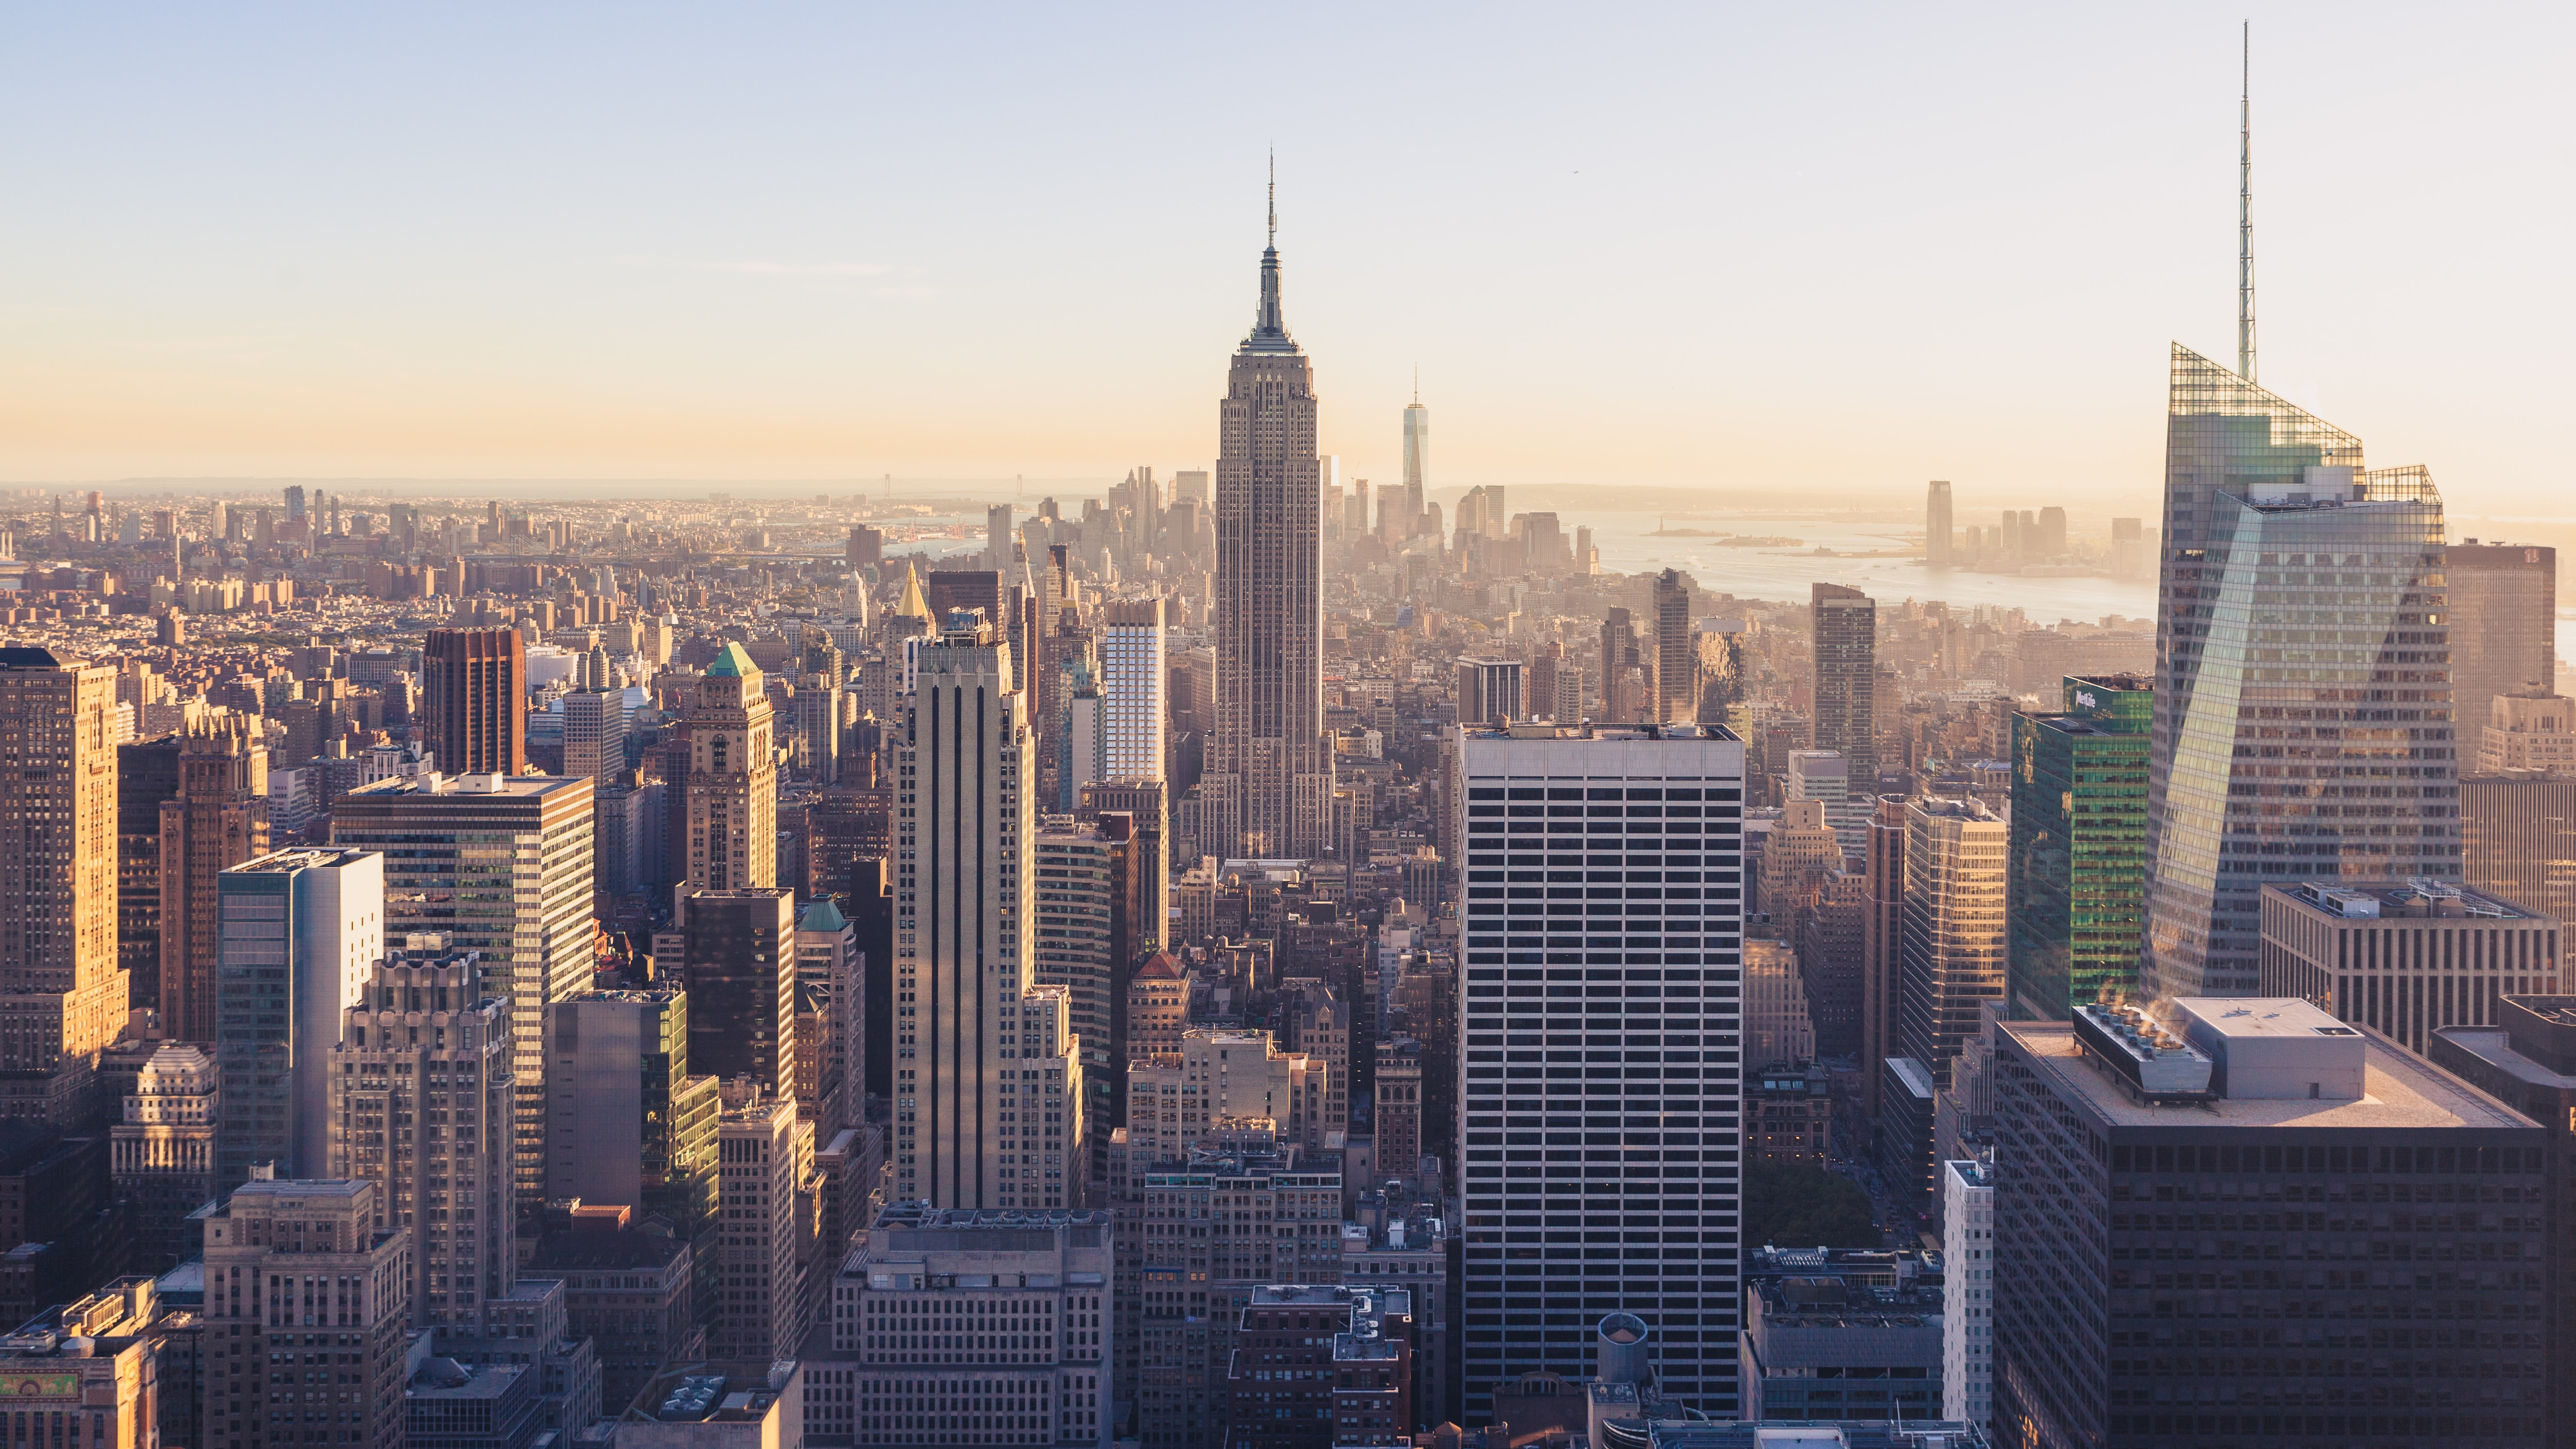 Top 70+ Construction Companies In NYC In 2021